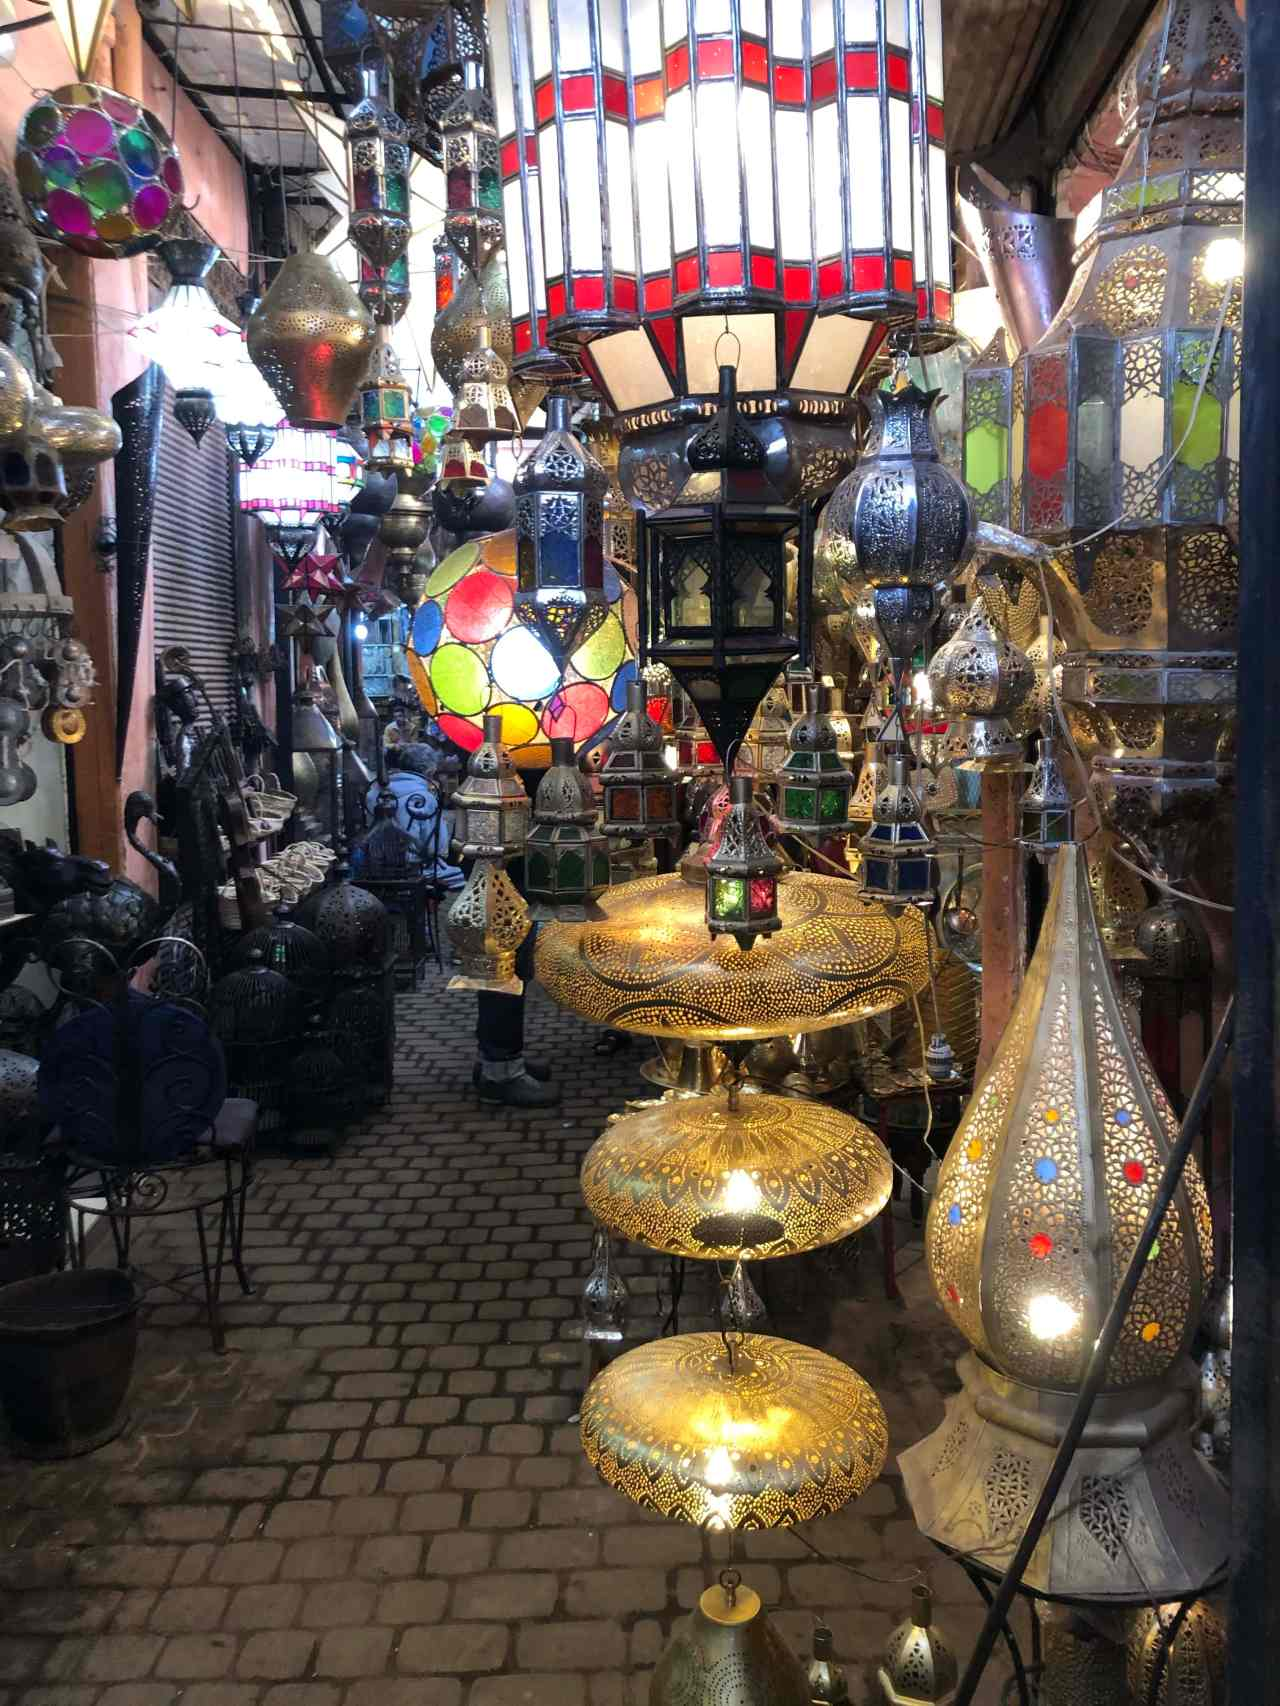 Moroccan lanterns in the Marrakech souks